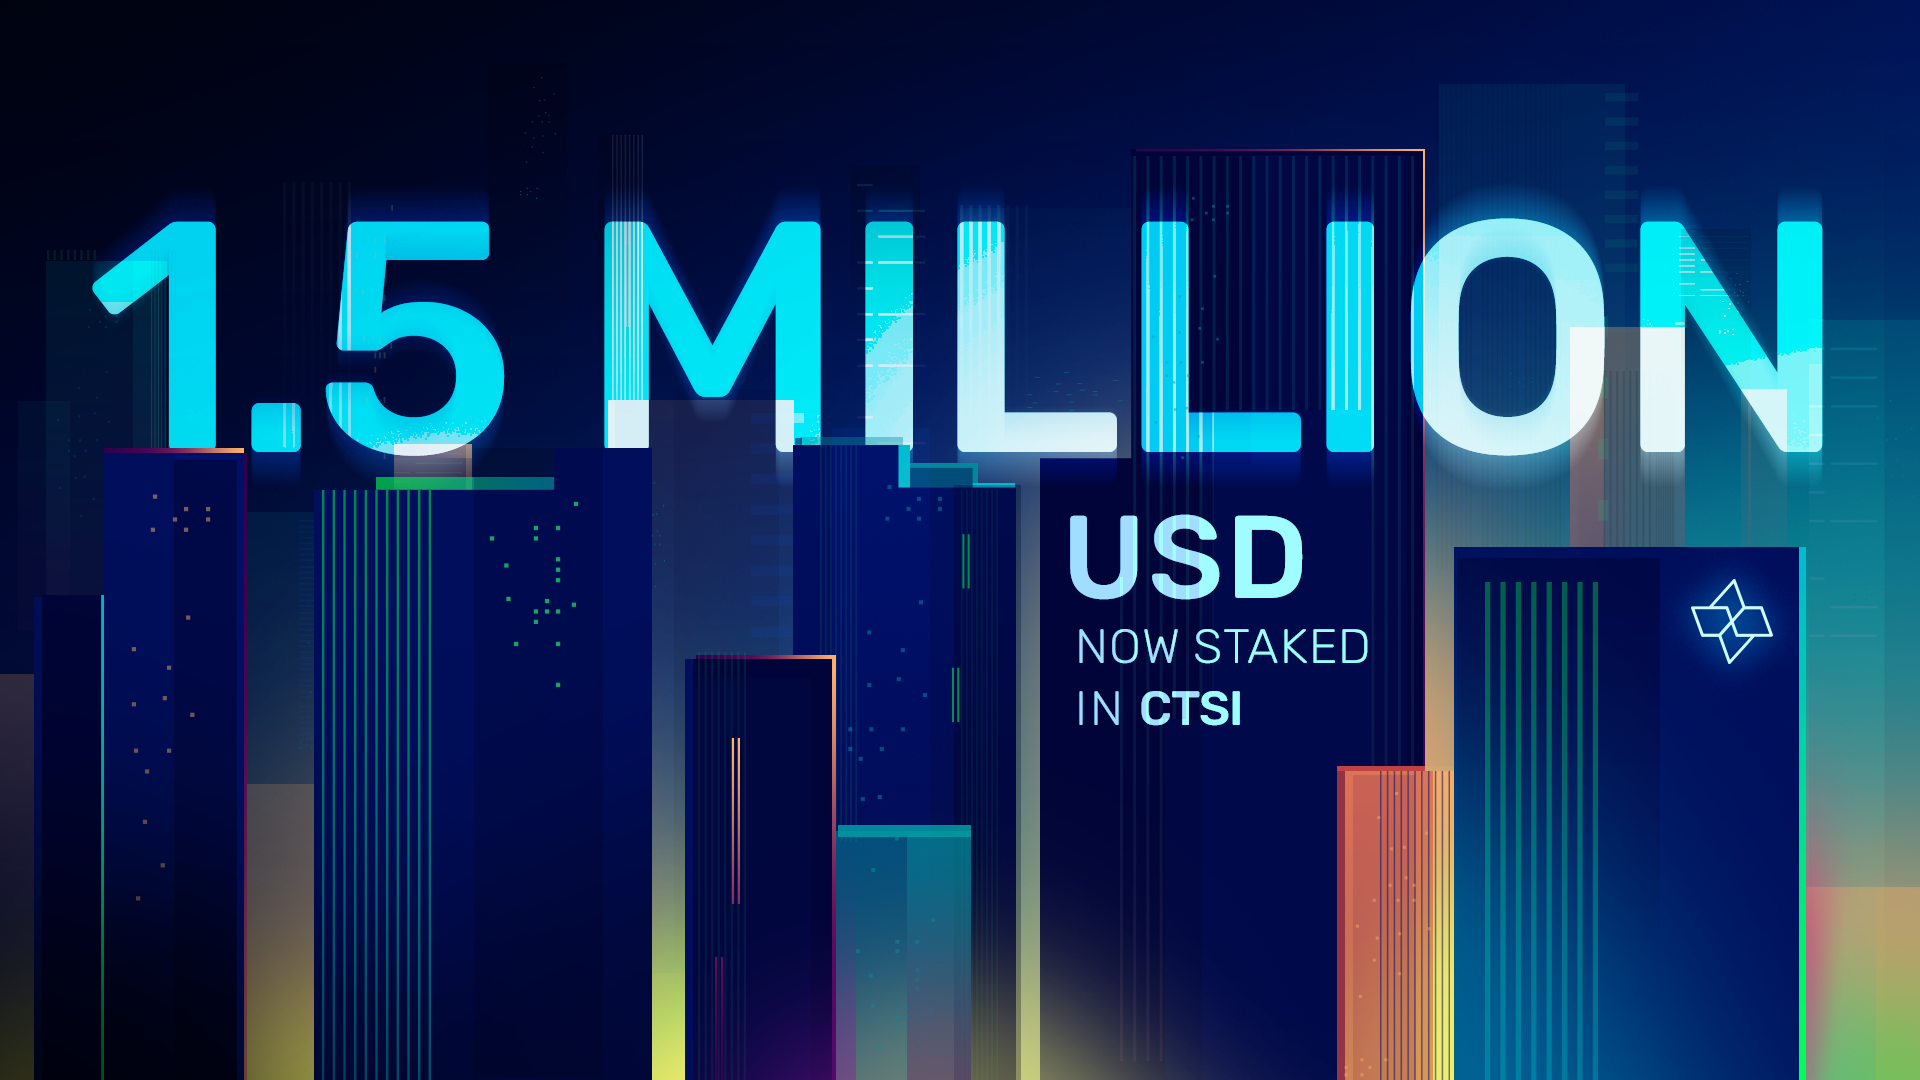 Over $1.5M US in CTSI Now Staked!